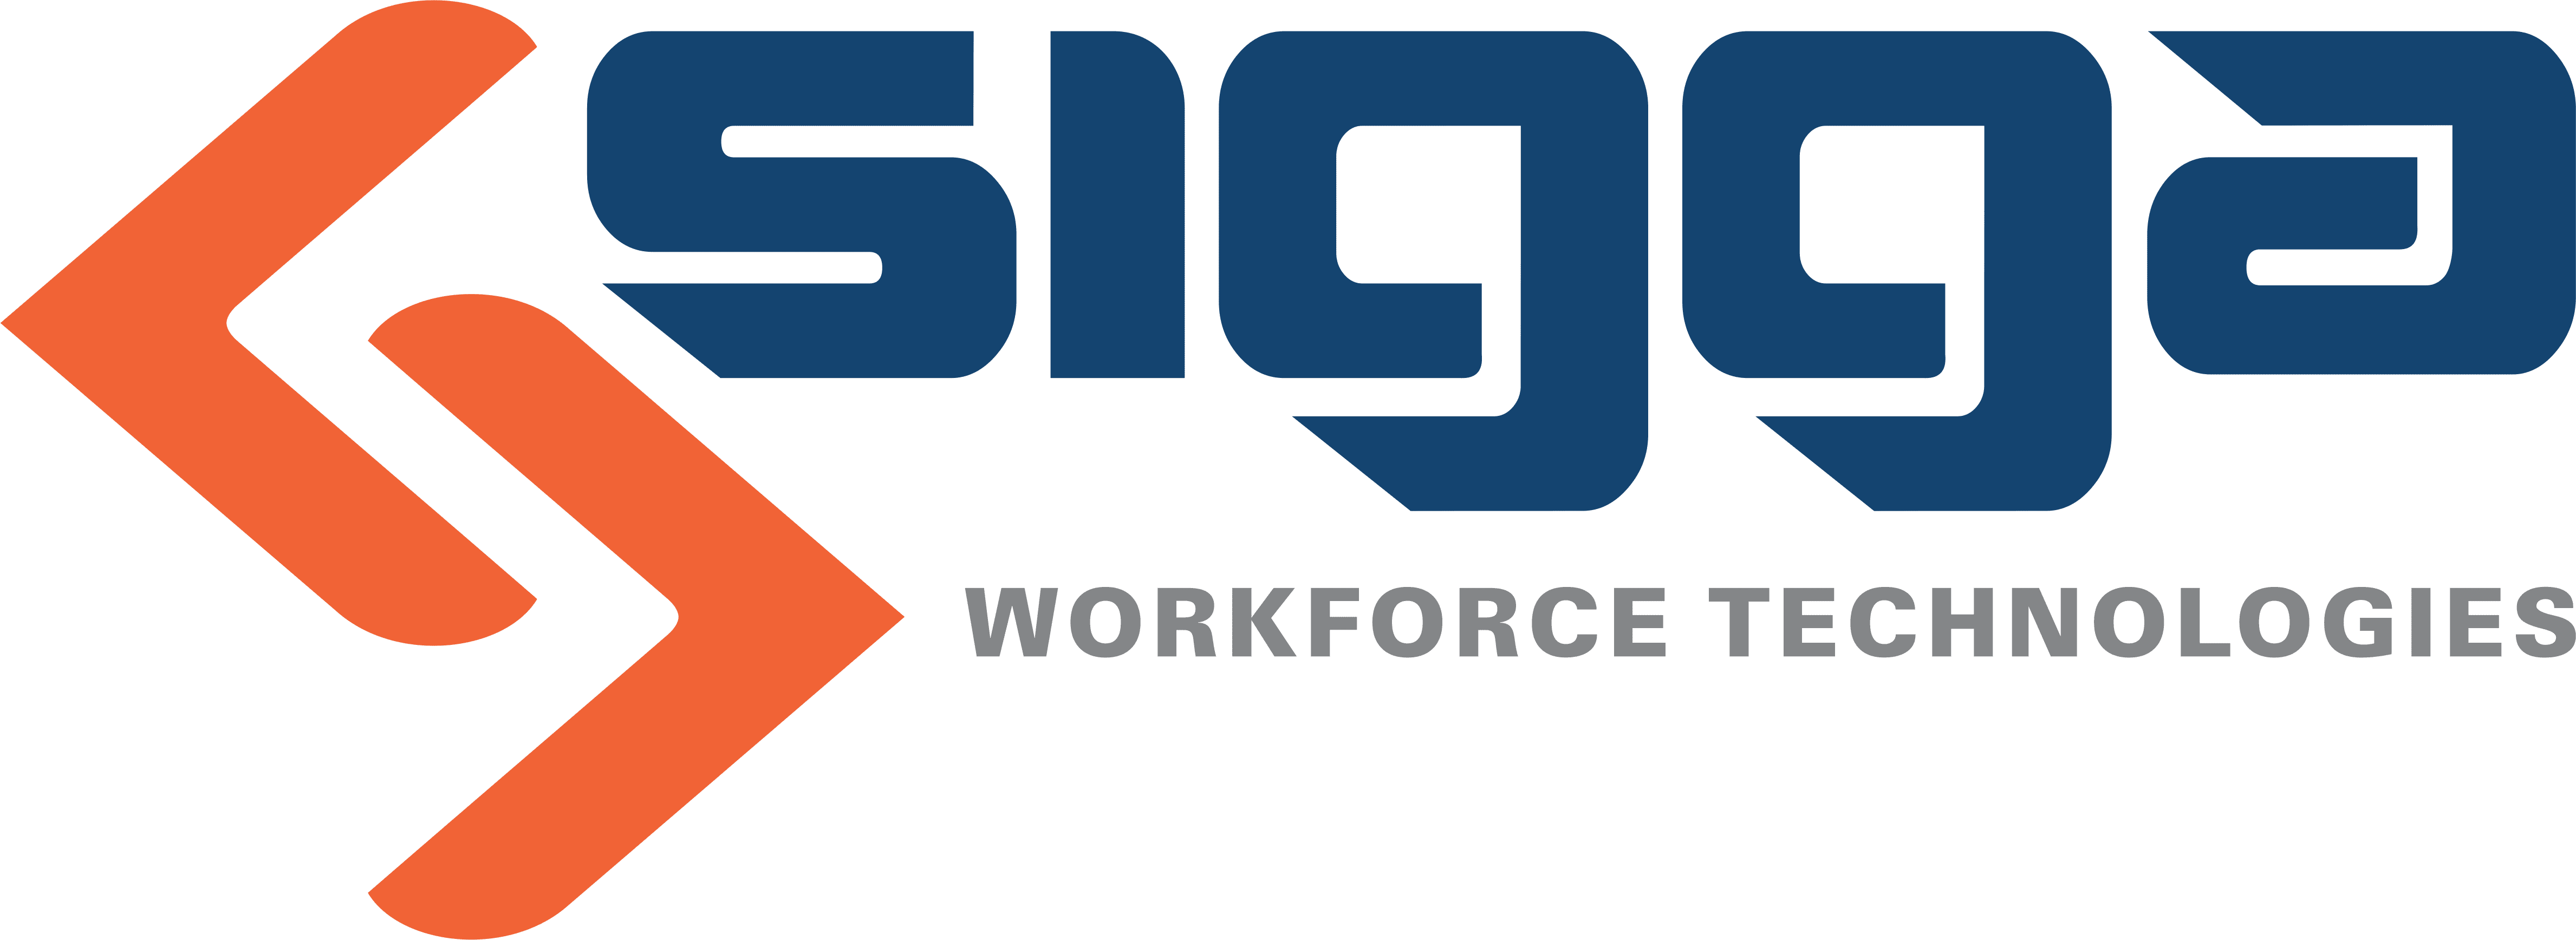 Logo_Sigga_WORKFORCE-TECHNOLOGIES-1